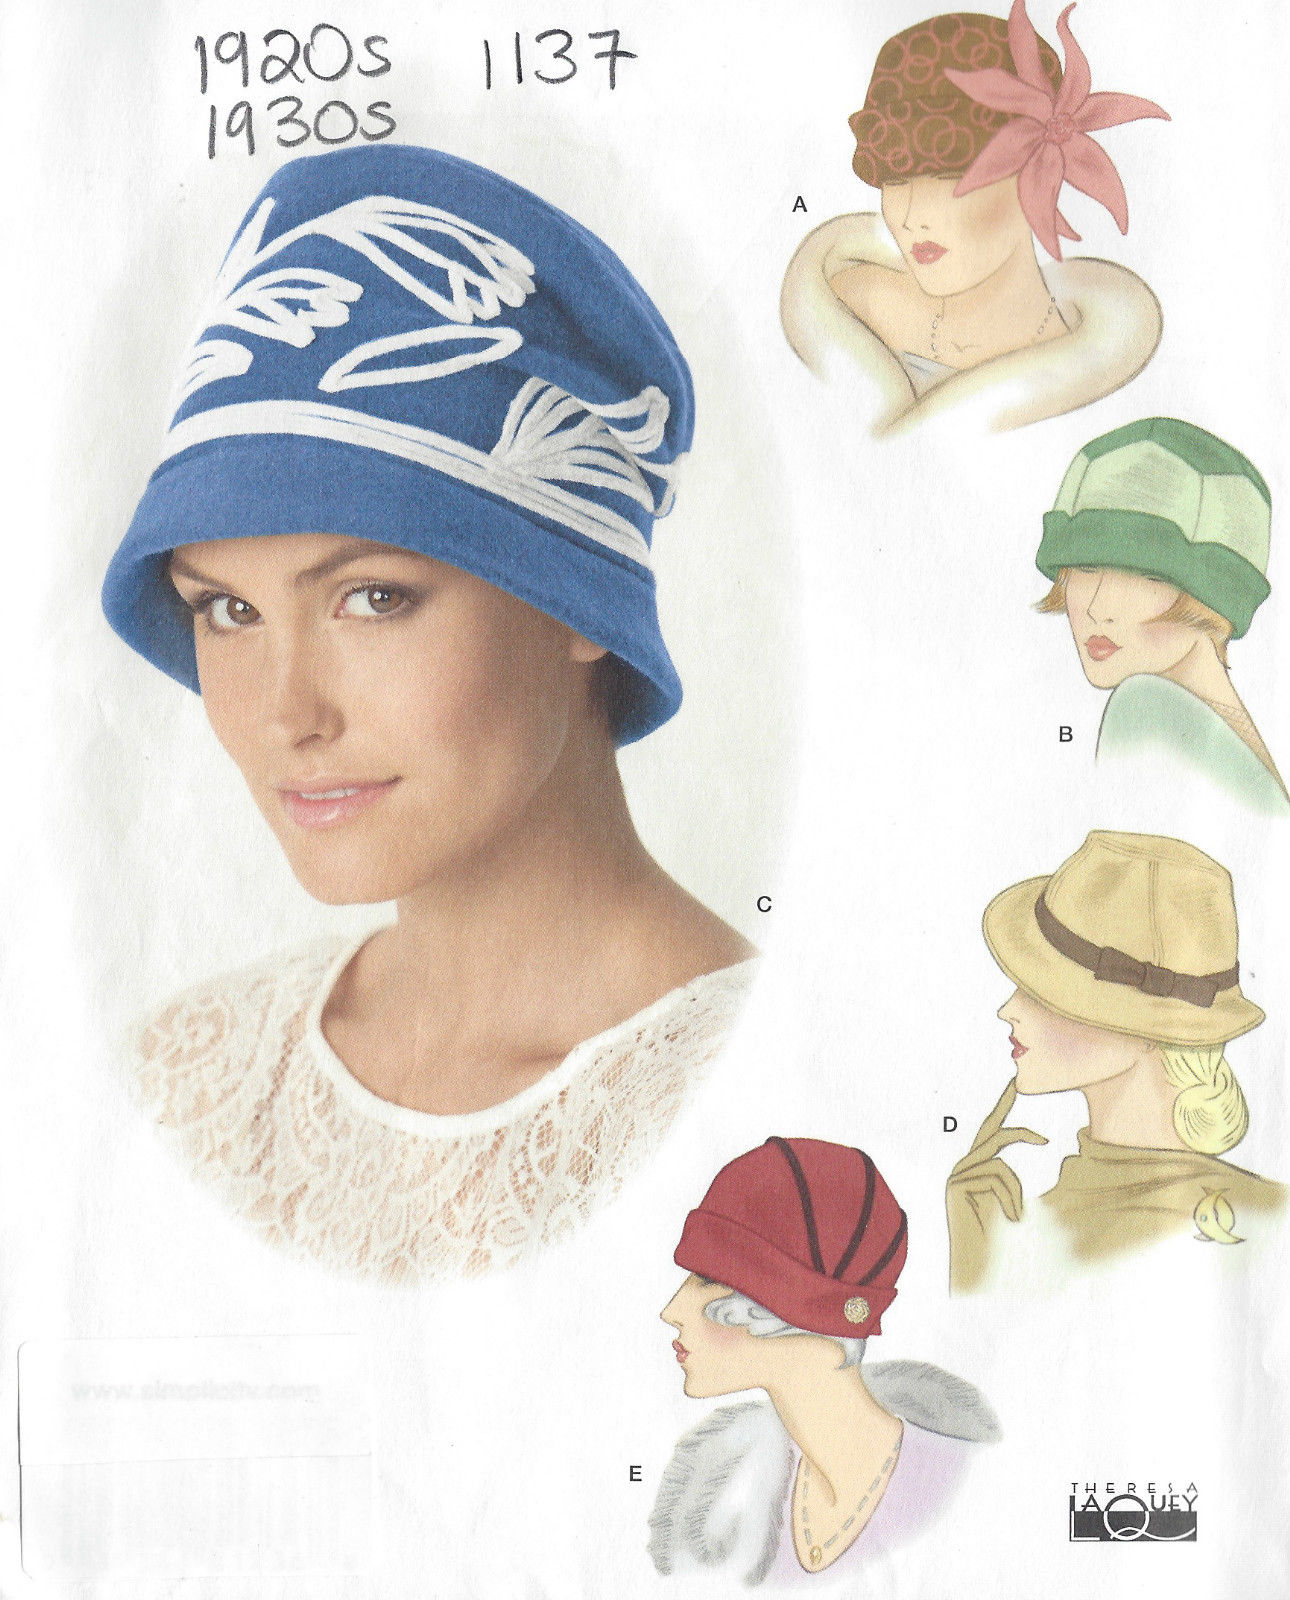 1920s & 1930s Vintage Sewing Pattern HAT S21-22-23 ins ...